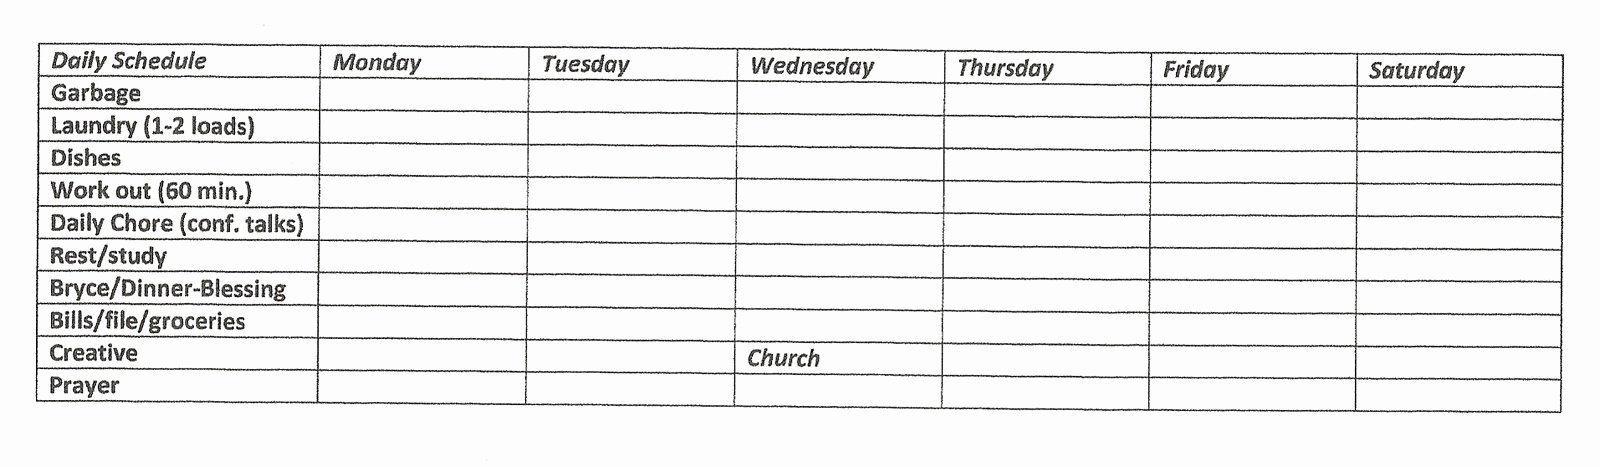 Church Cleaning Checklist Spreadsheet Awesome Free Janitorial Bidding Spreadsheet